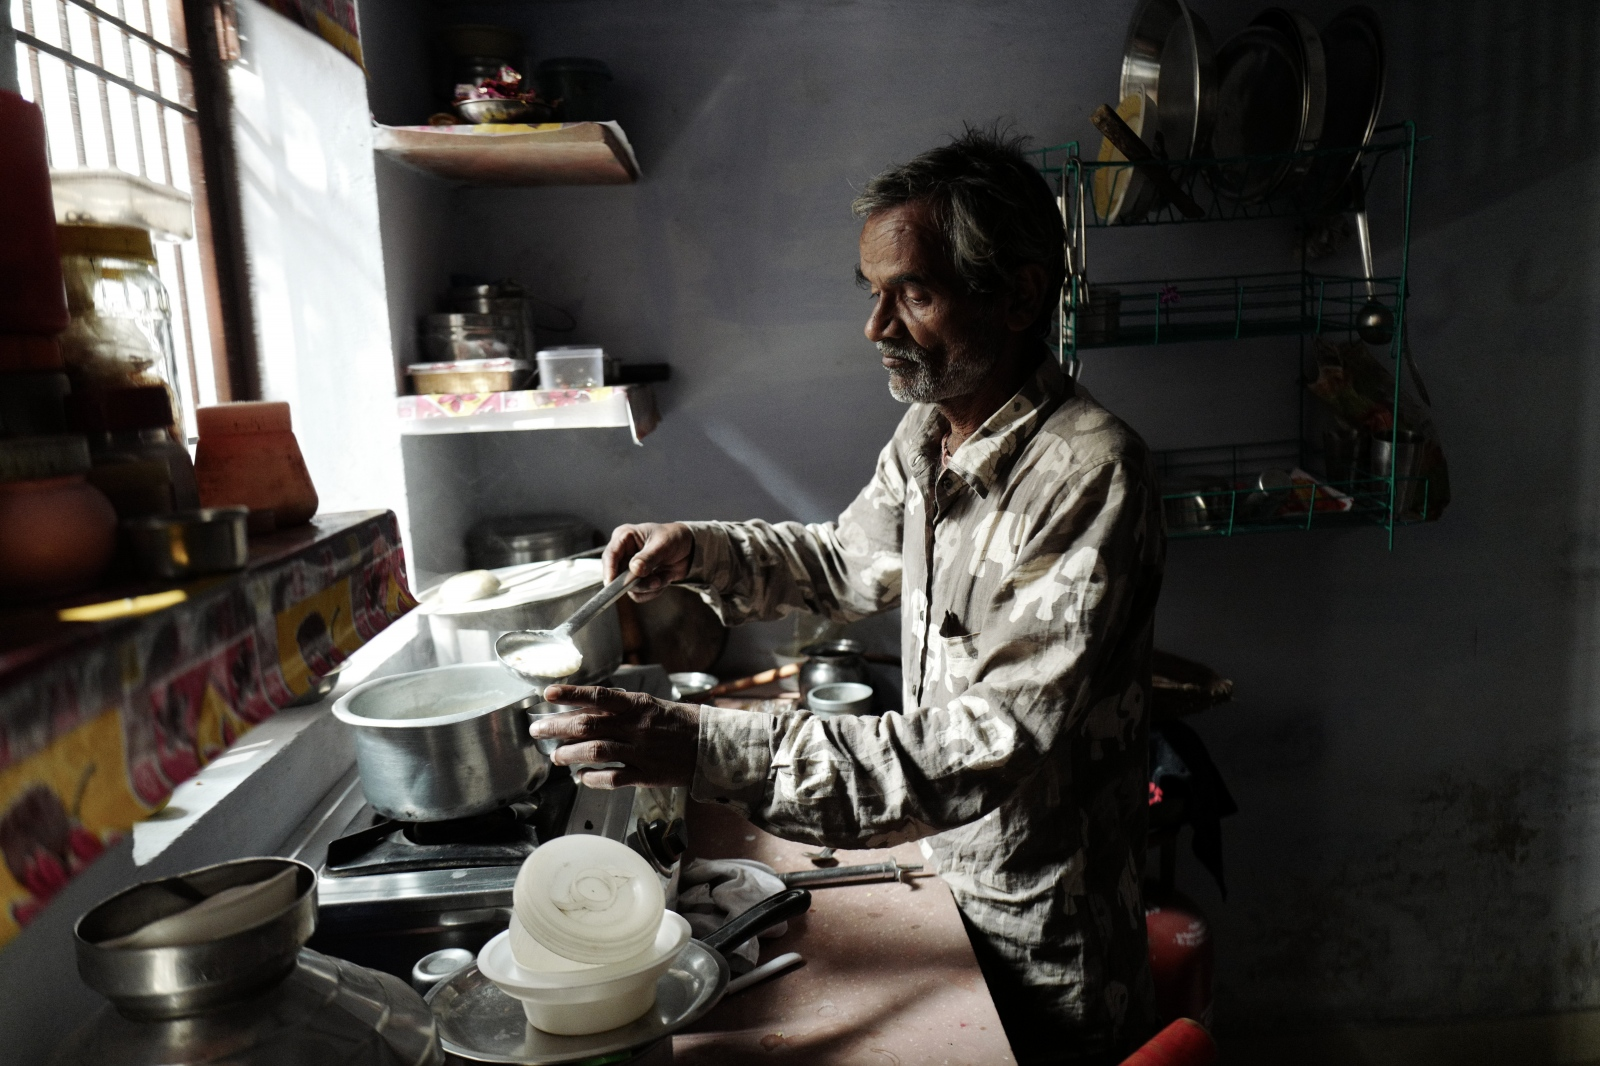 Agra, India. November 09, 2016. Indrageet in the kitchen preparing lassi for his daughter.